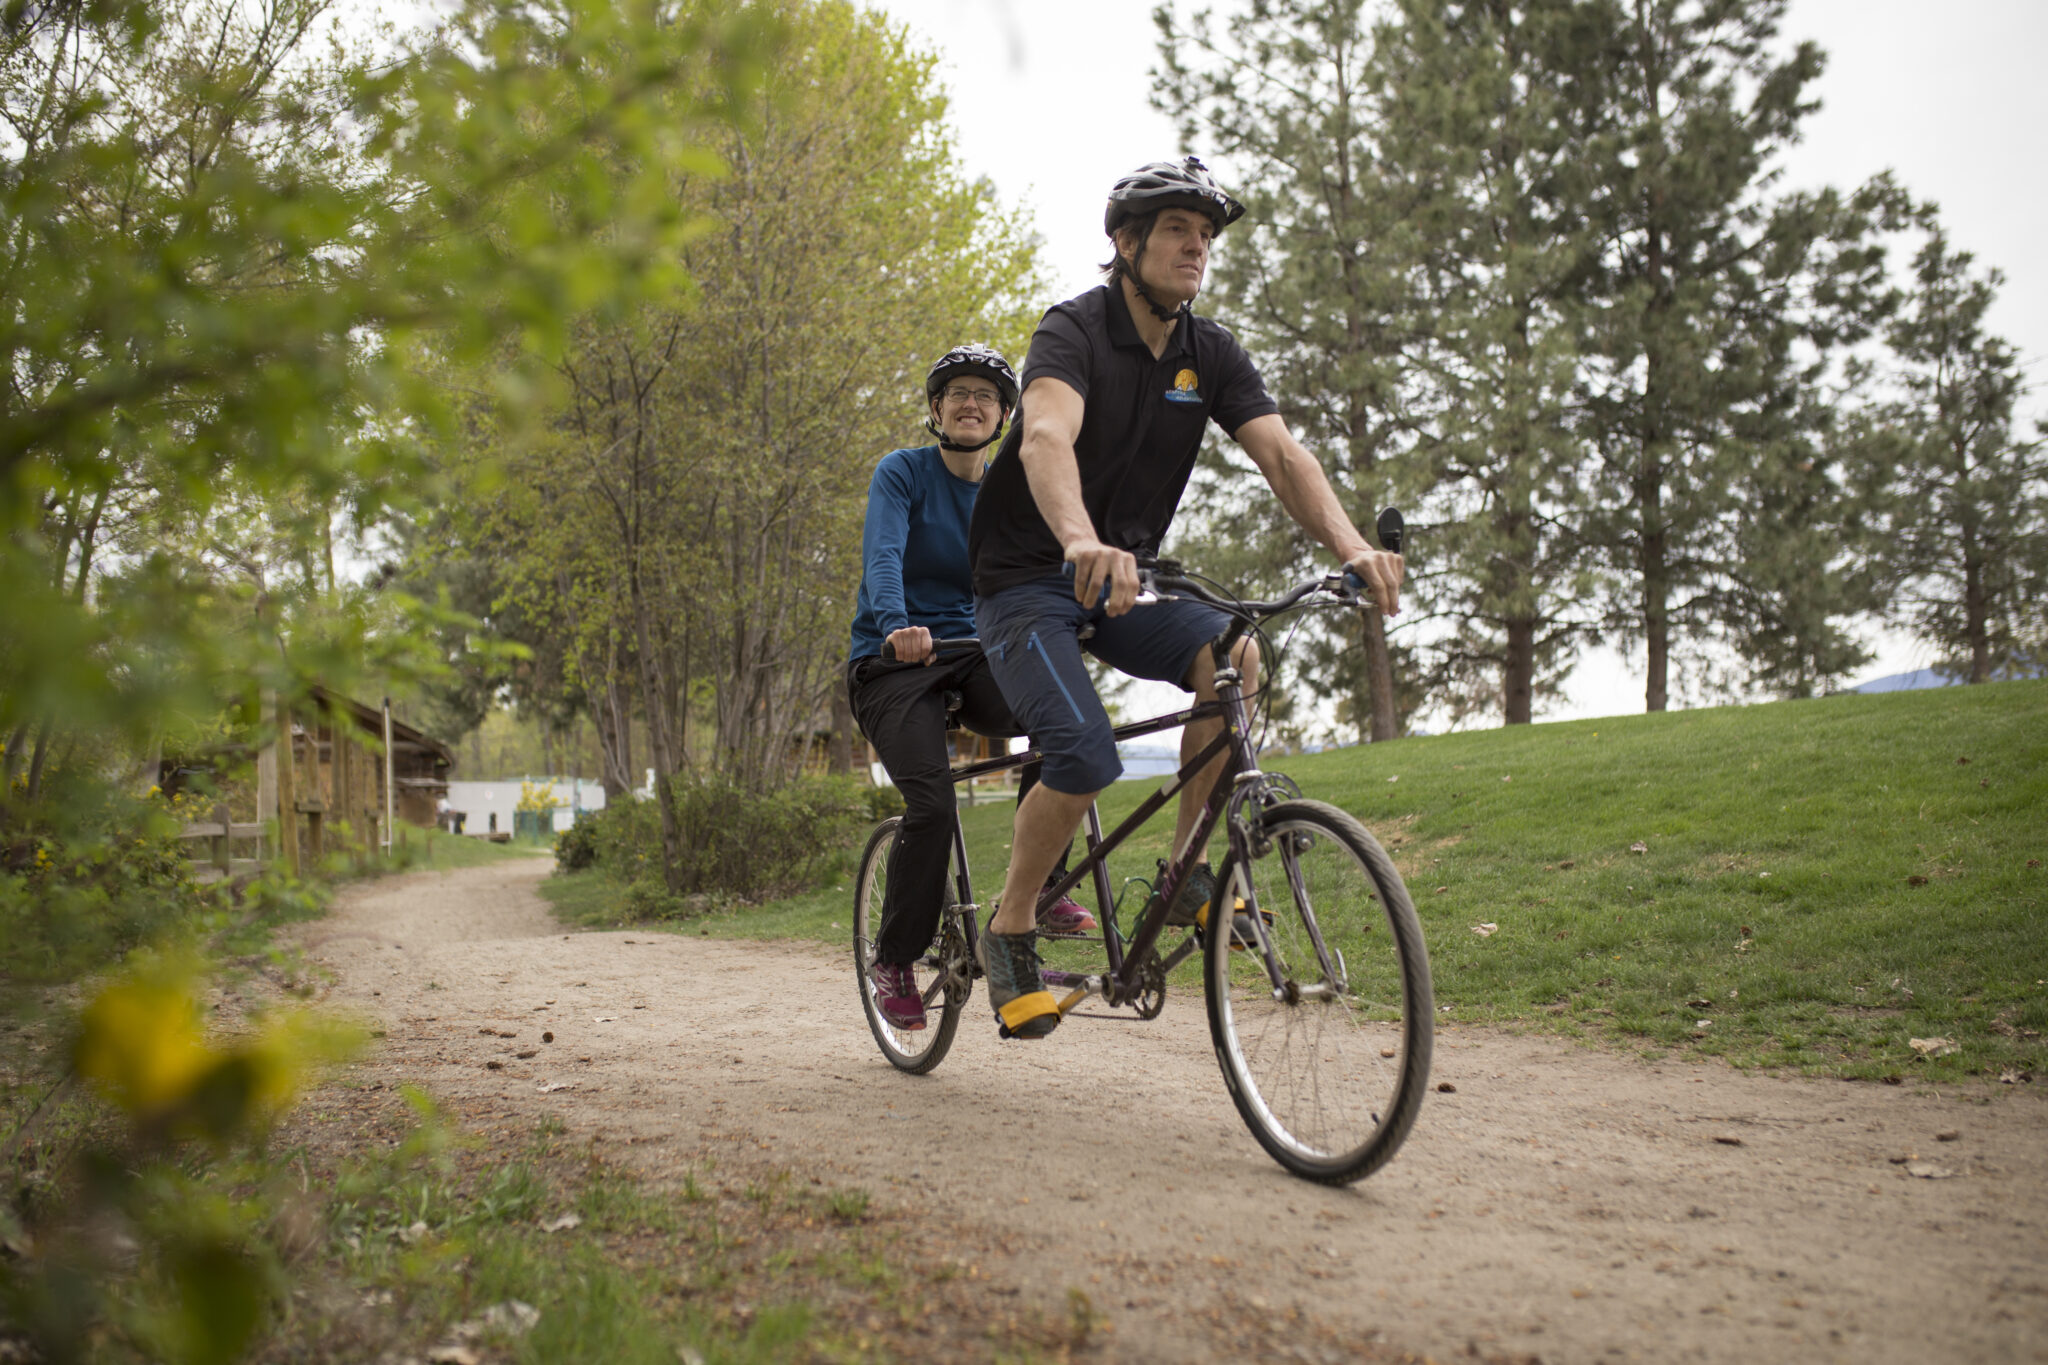 a man and a woman using a dark purple tandem upright cycle on a forest path.